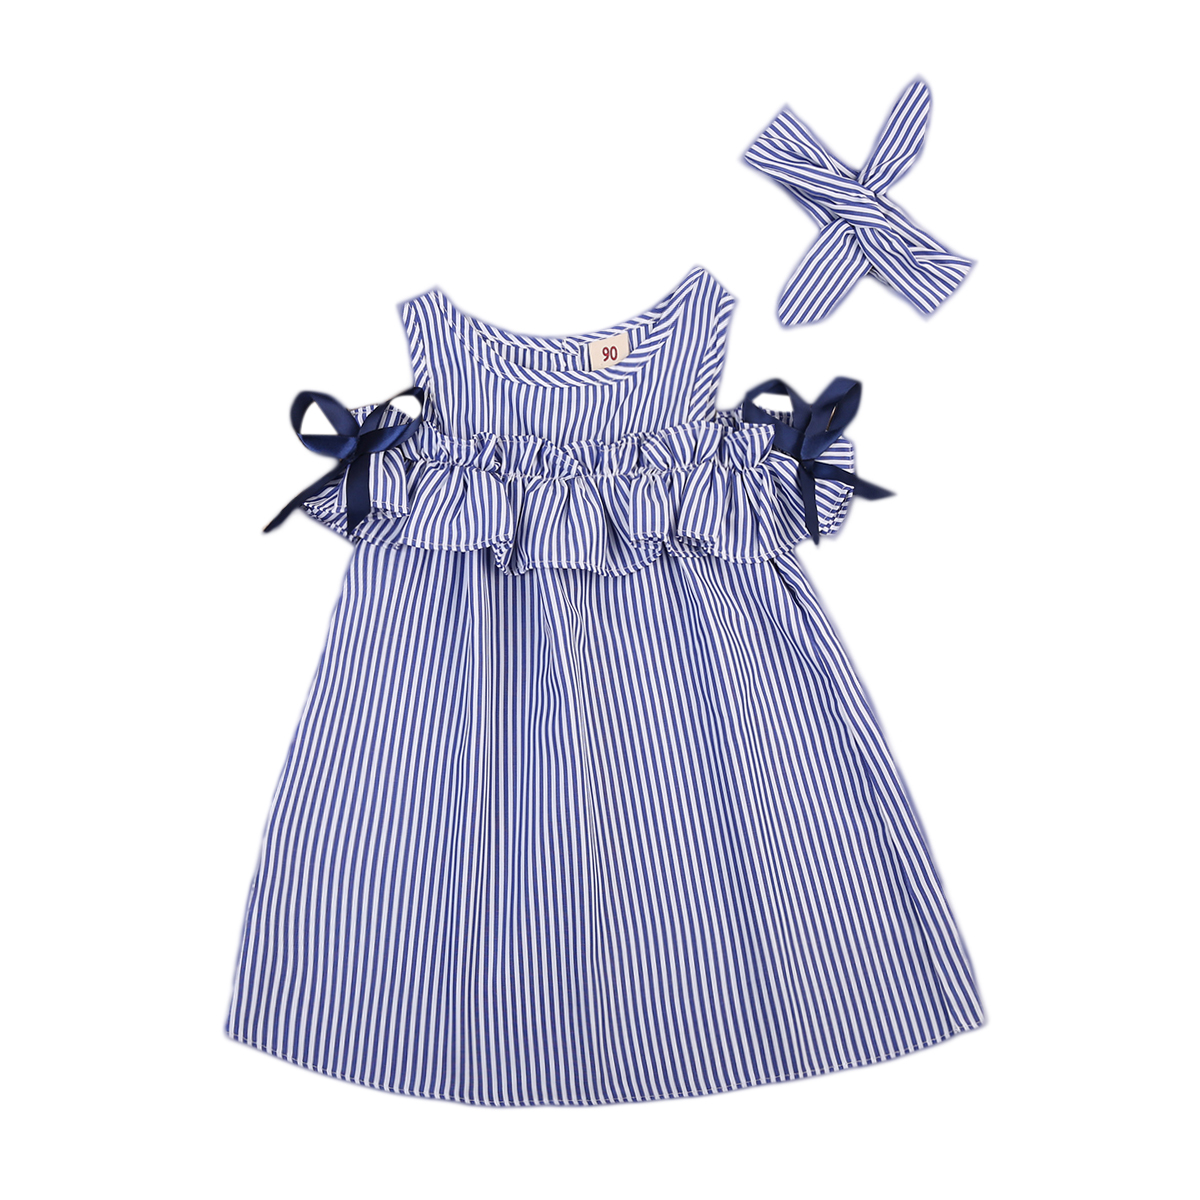 Kids Baby Girls Clothes Striped Dress Off-shoulder Summer Sleeveless Cotton Casual Sundress